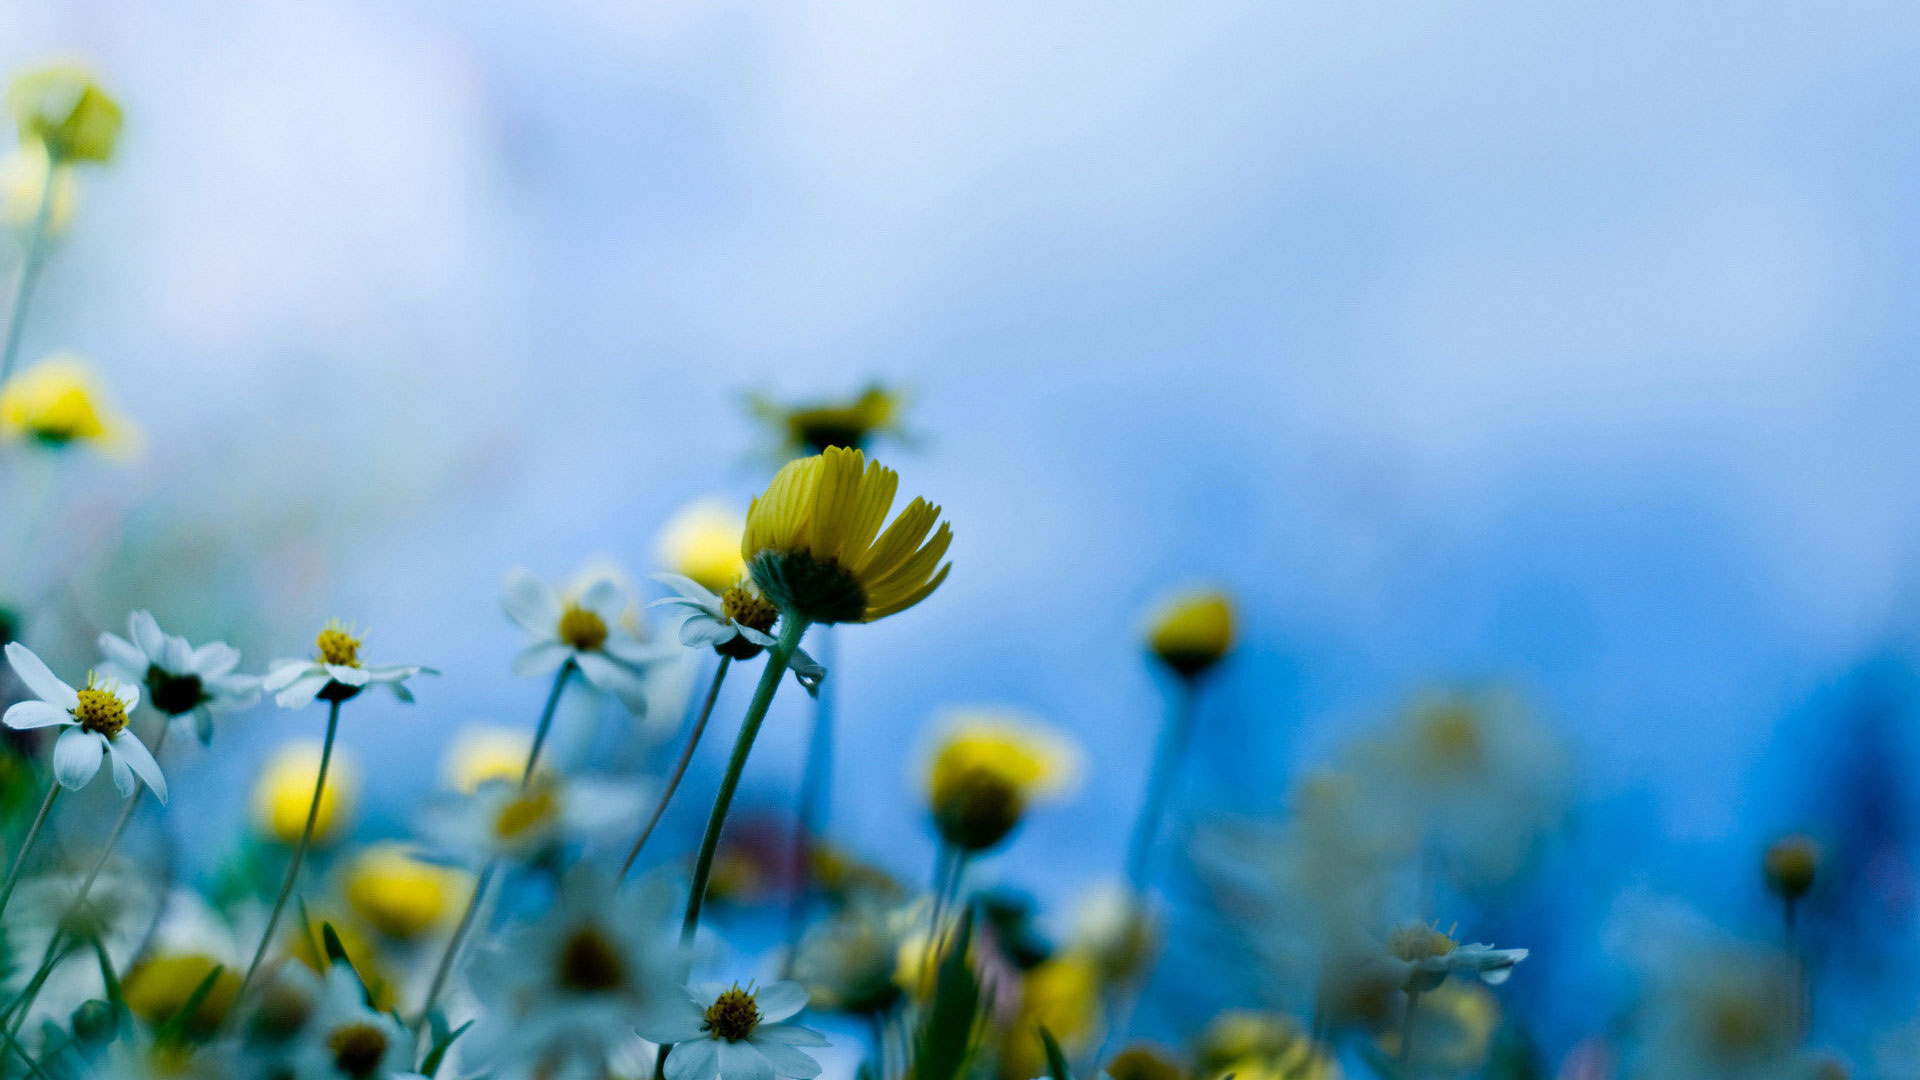 25 free hd flowers wallpapers for Amazing wallpapers for nokia